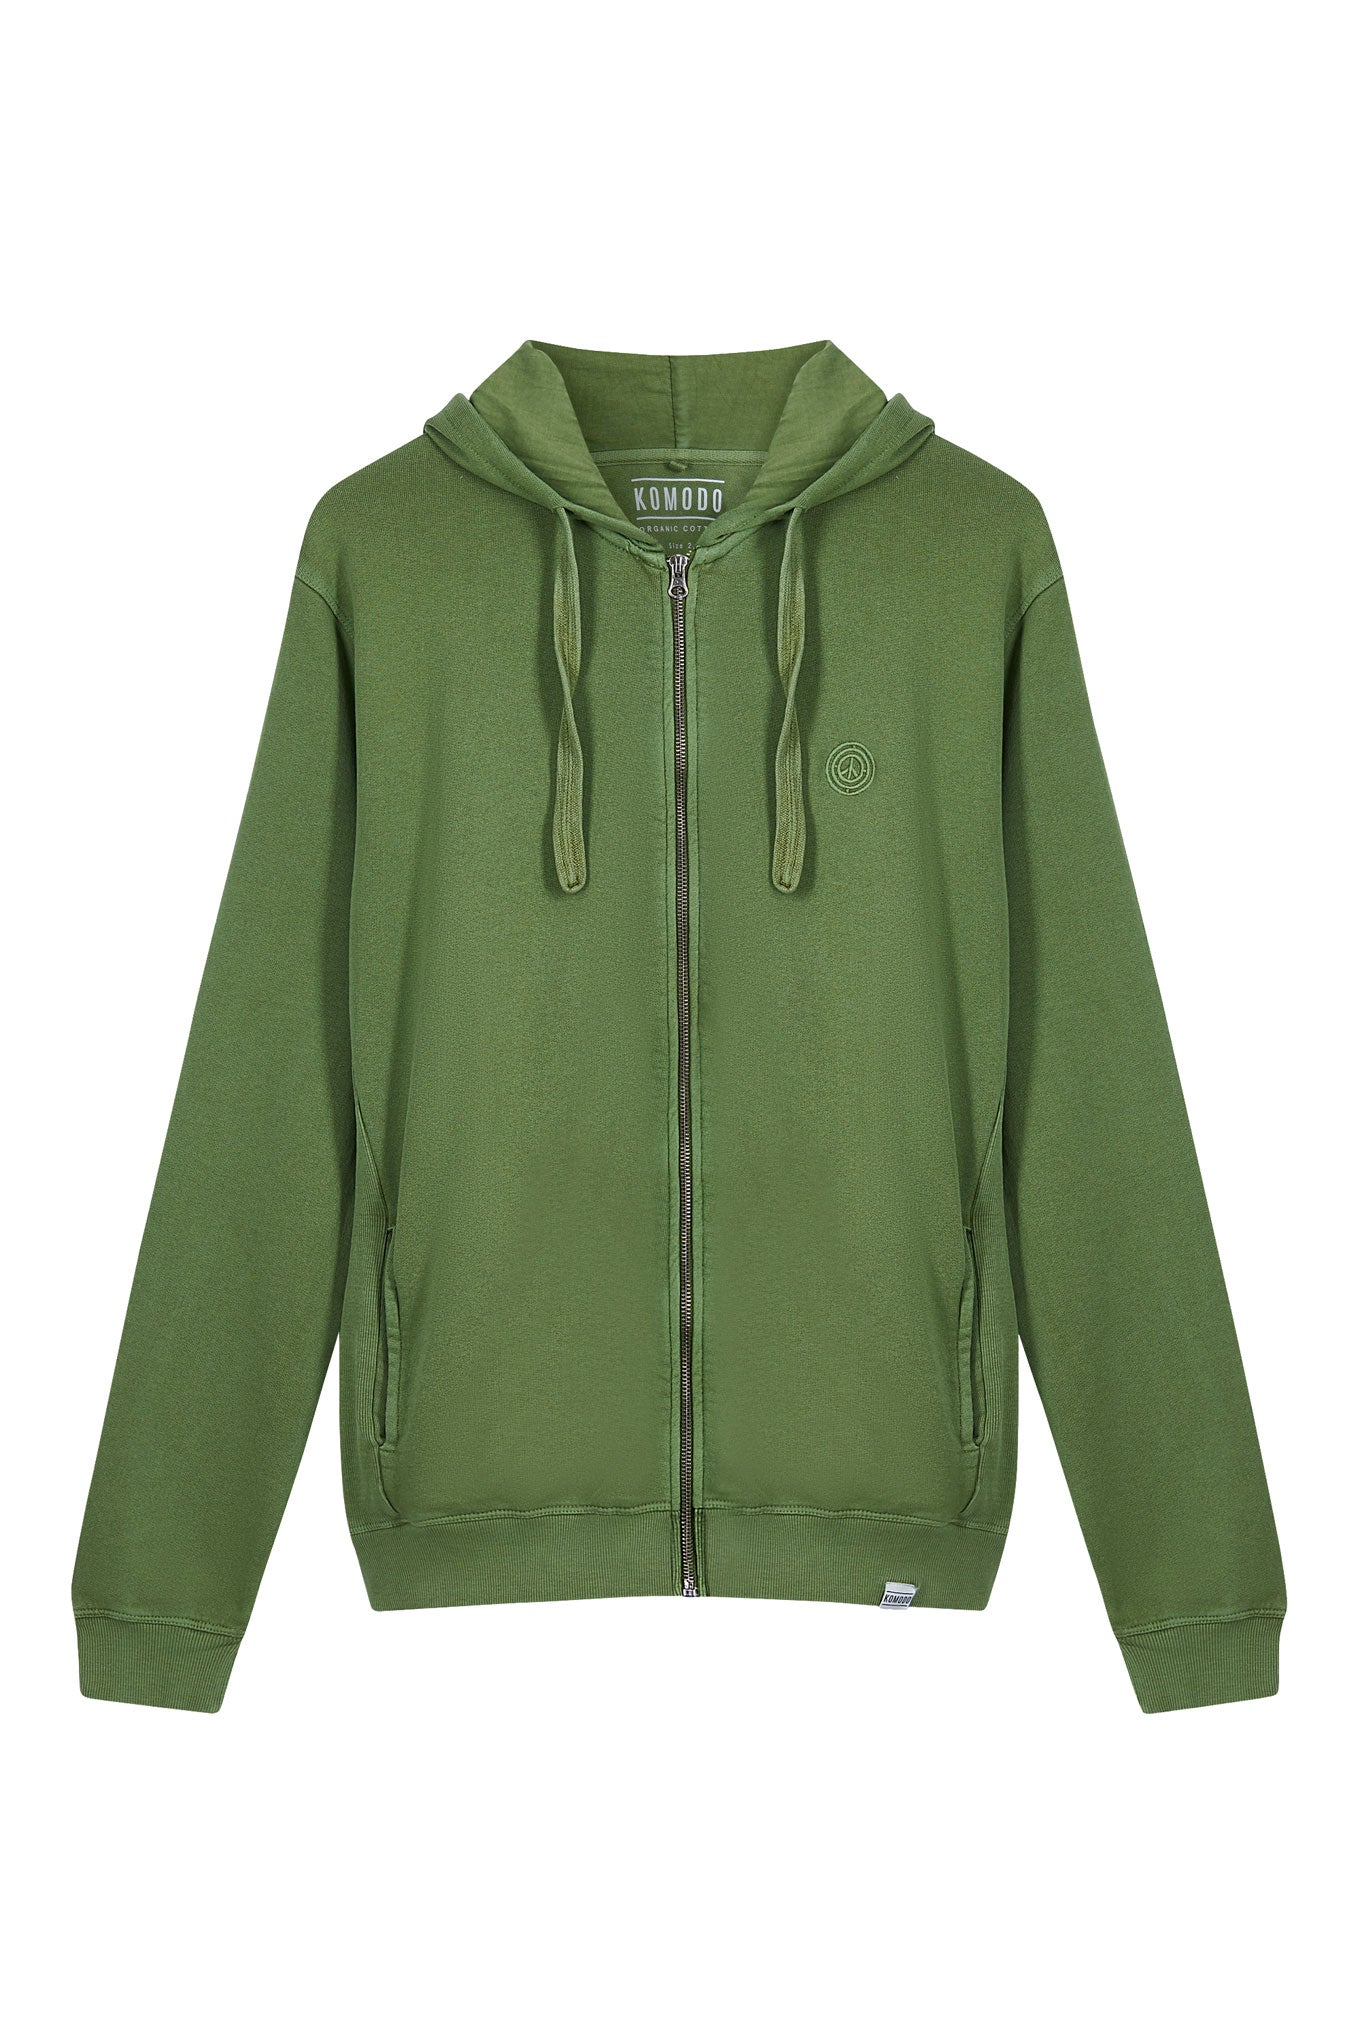 APOLLO Mens Organic Cotton Zip Hoodie Olive